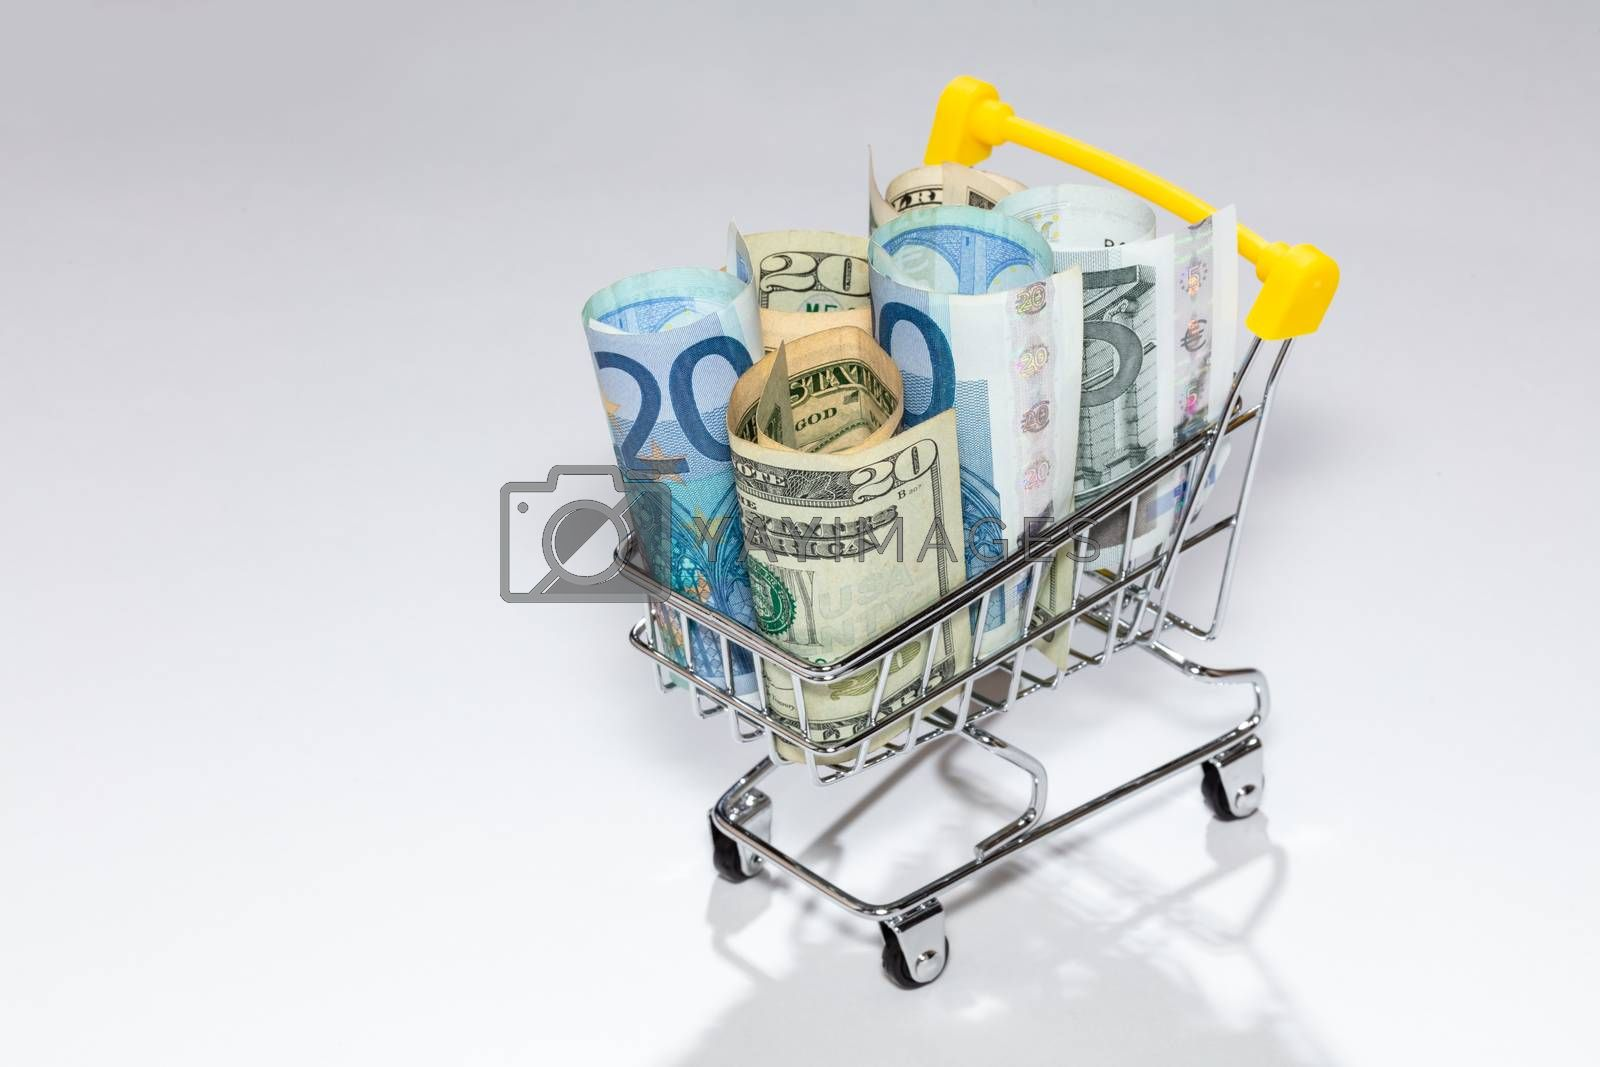 Closeup of a shopping cart full of euro and dollar bills isolated on white background. Concepts of loan, investment, pension, saving money, financing, collateral, debt, mortgage, financial crisis.